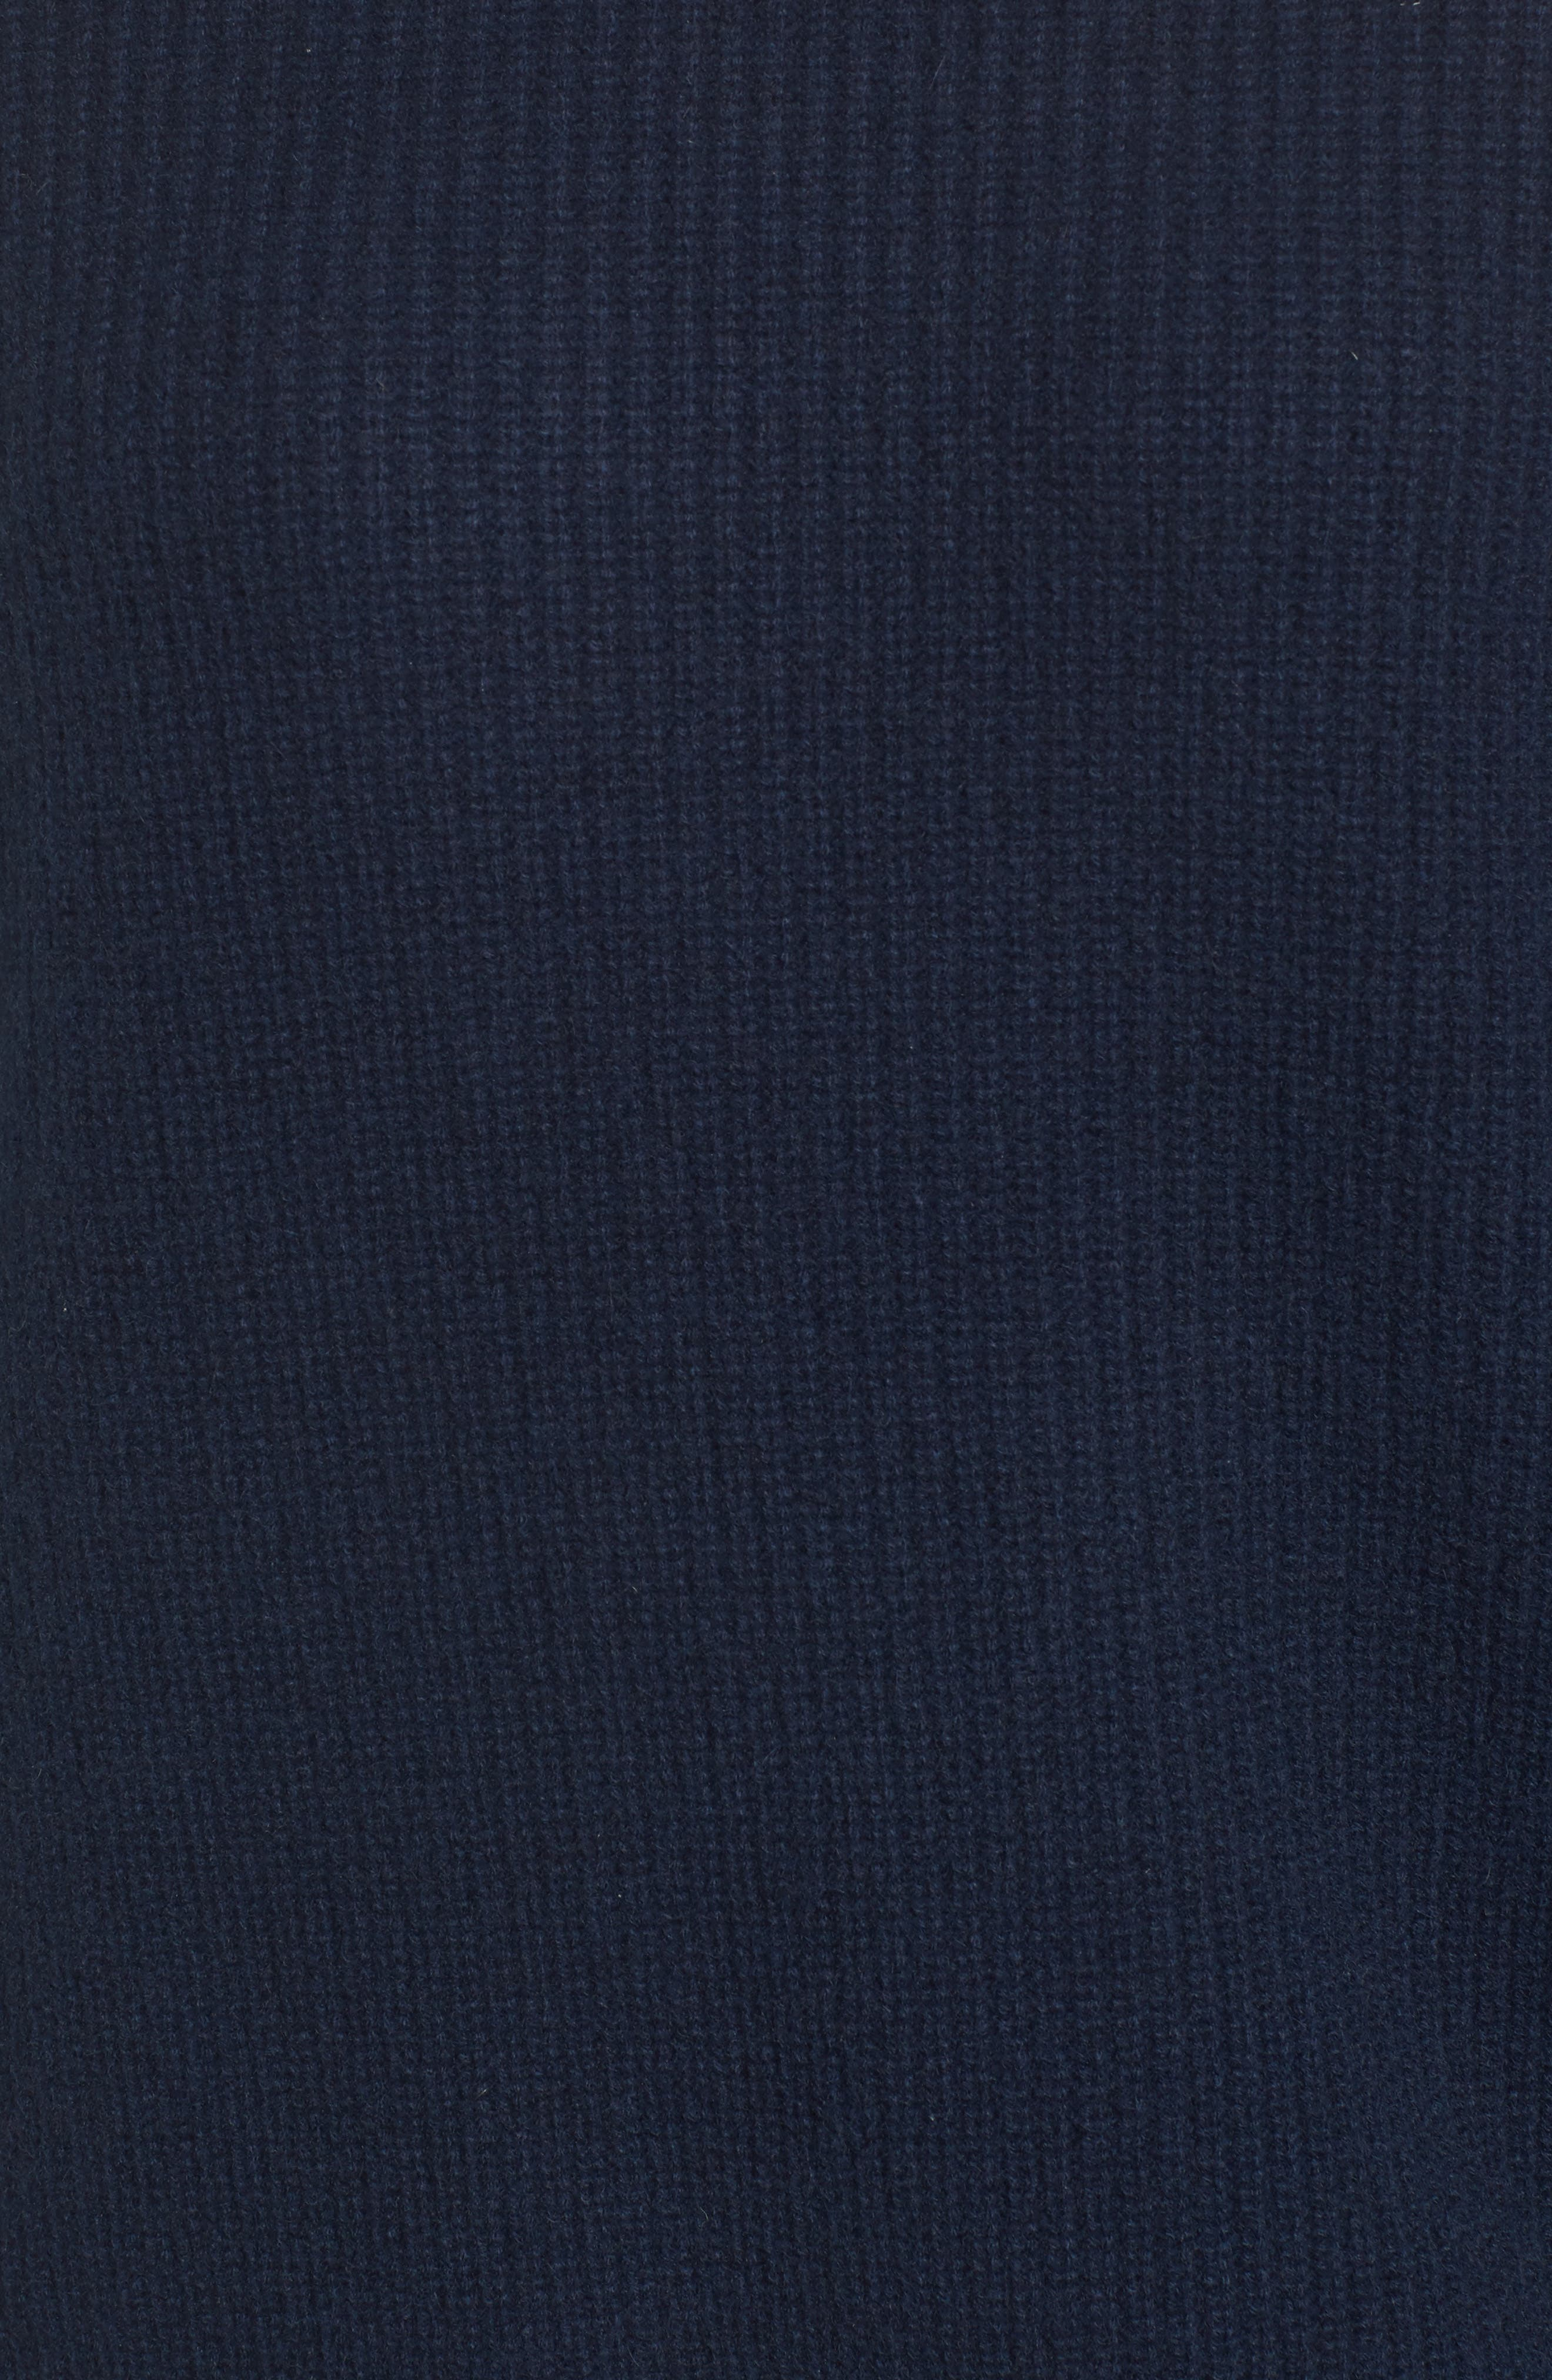 Suede Patch Cashmere Sweater,                             Alternate thumbnail 5, color,                             410